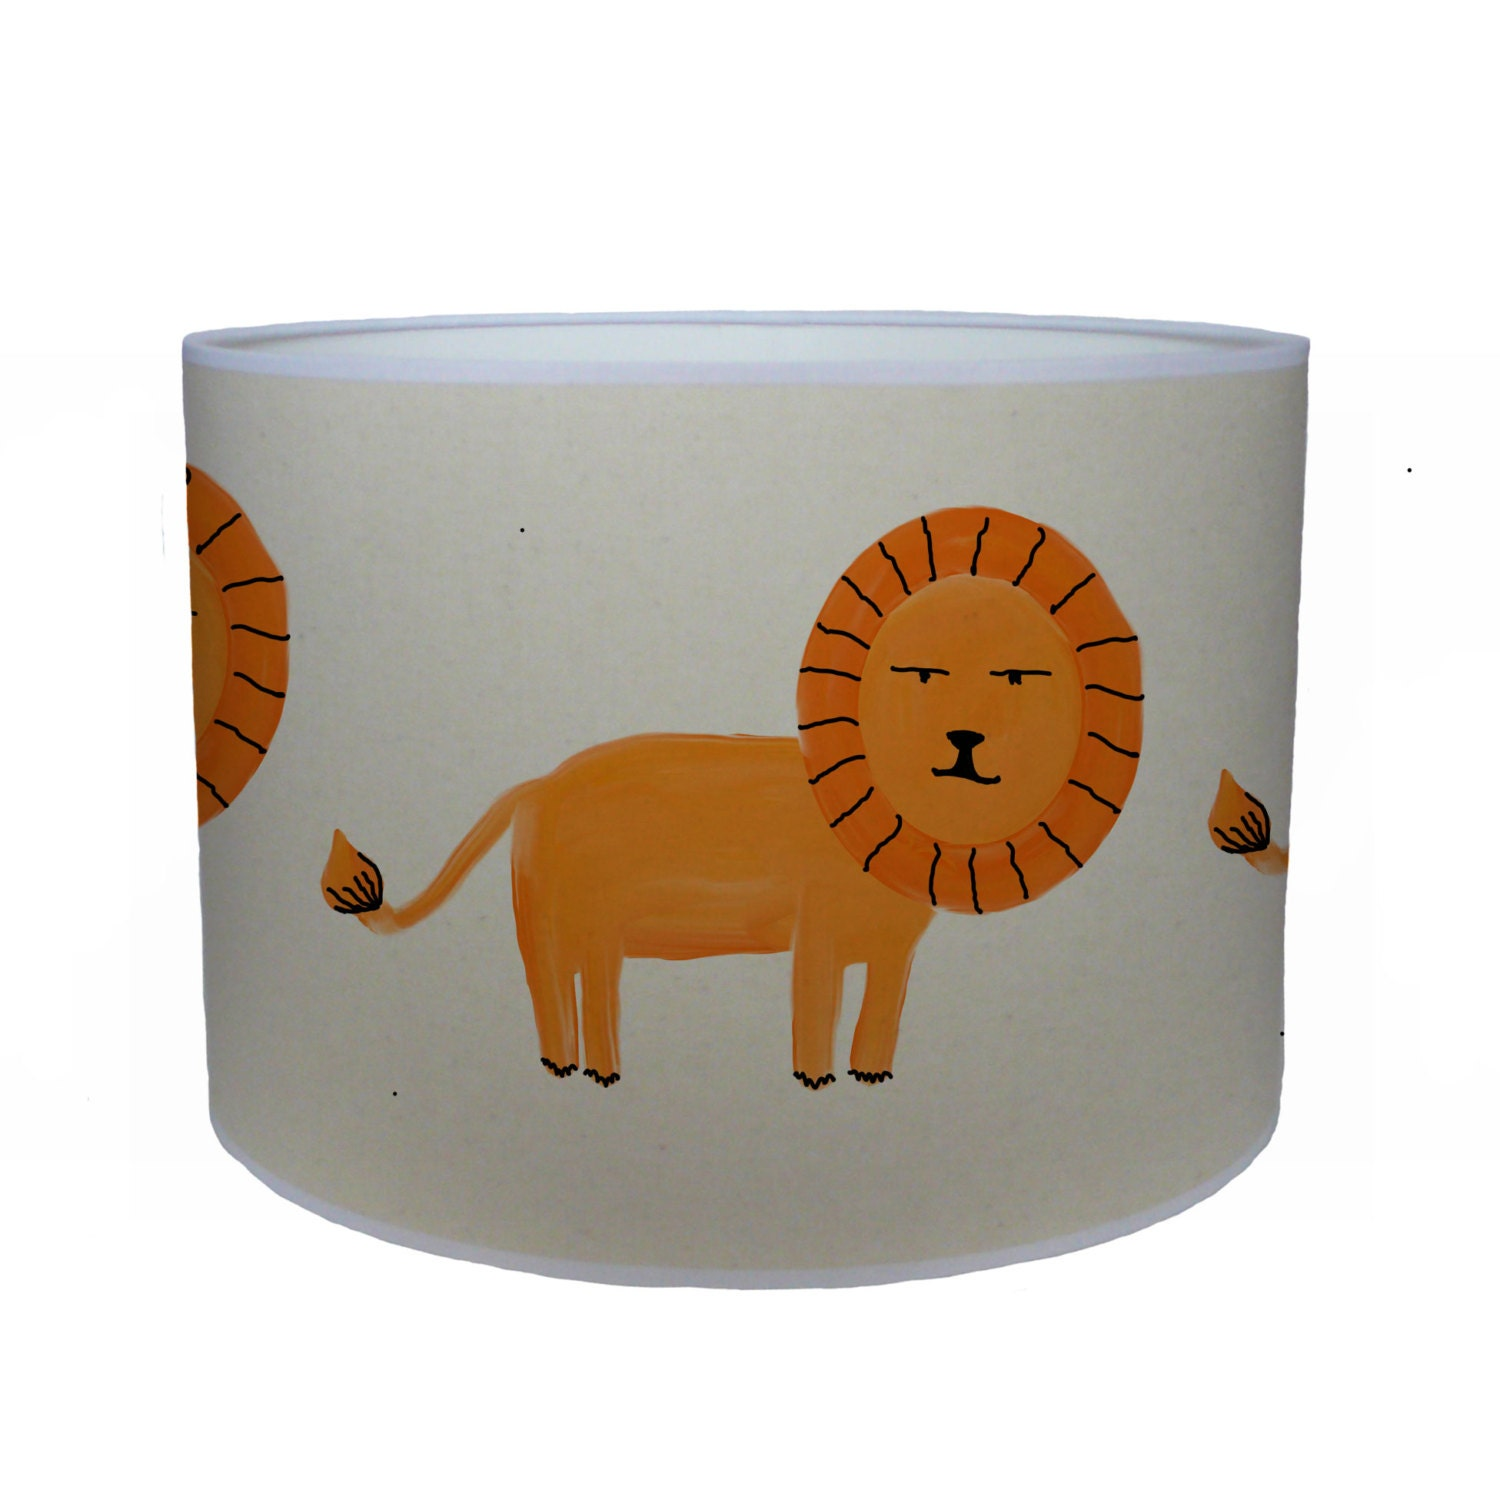 Orange lion shade lamp shade ceiling shade drum lampshade lighting handmade home